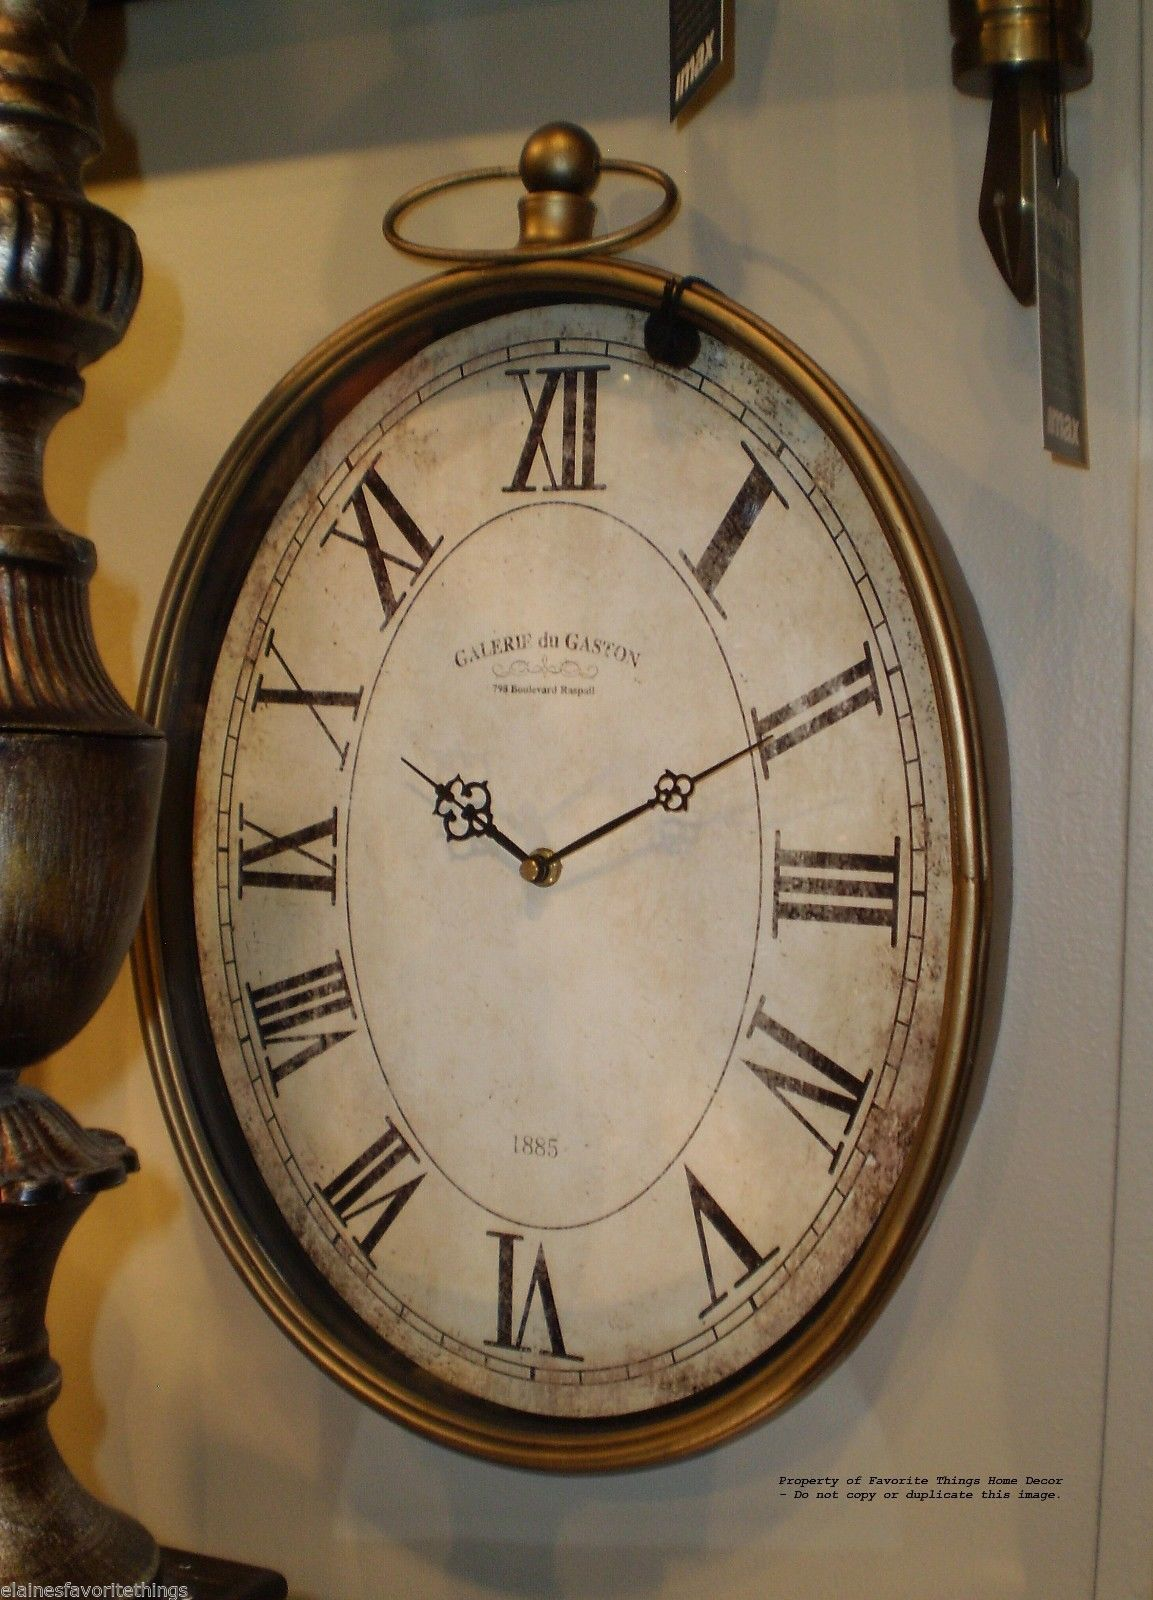 Oval Pocket Watch Vintage Style Wall Clock 20 High eBay